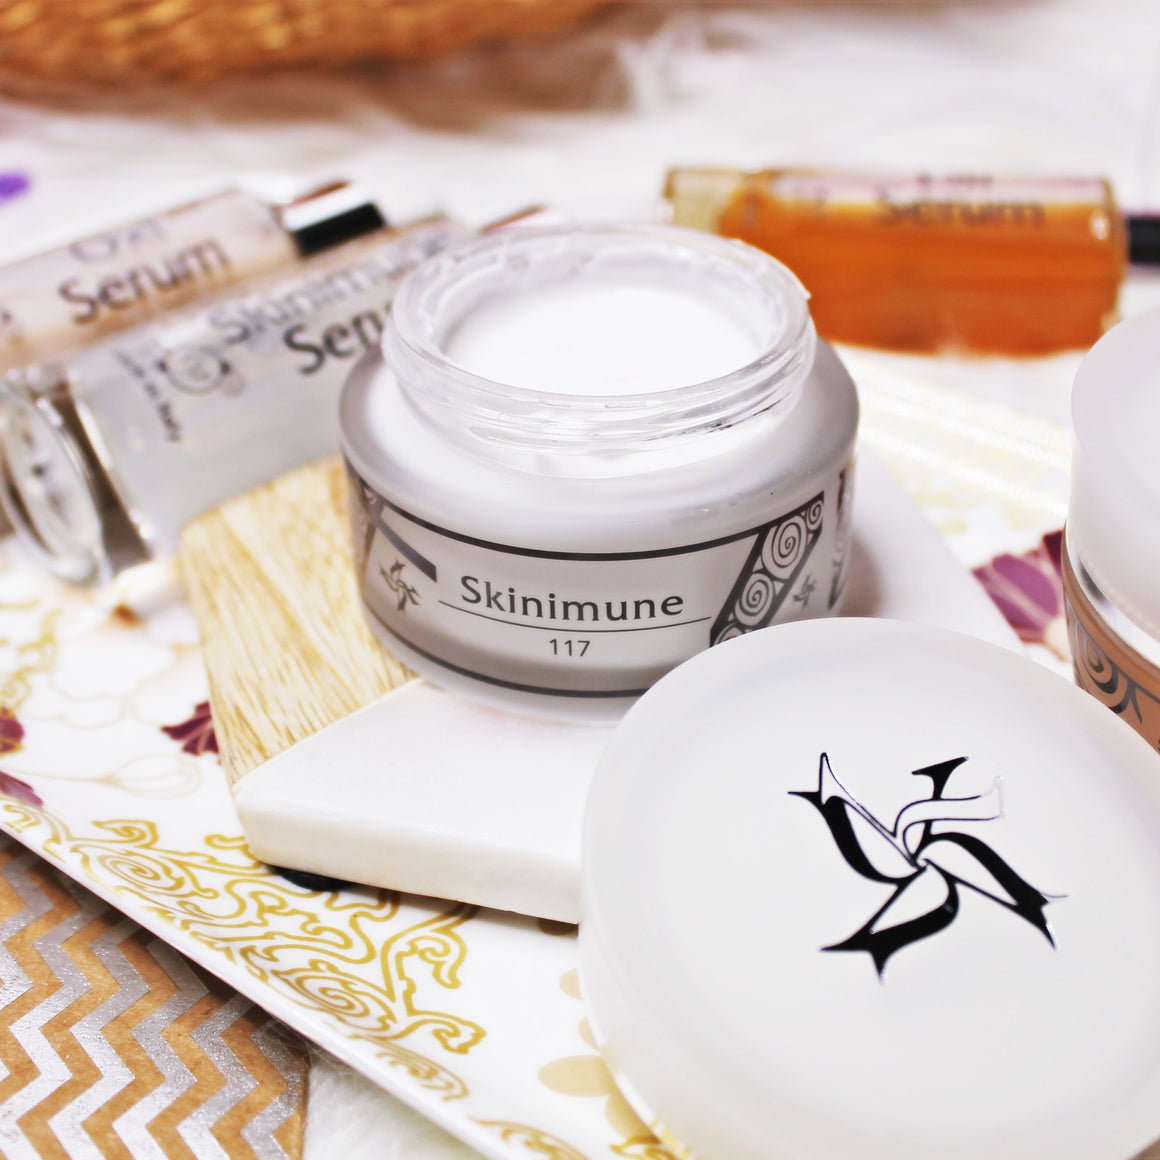 Skinimune Cream